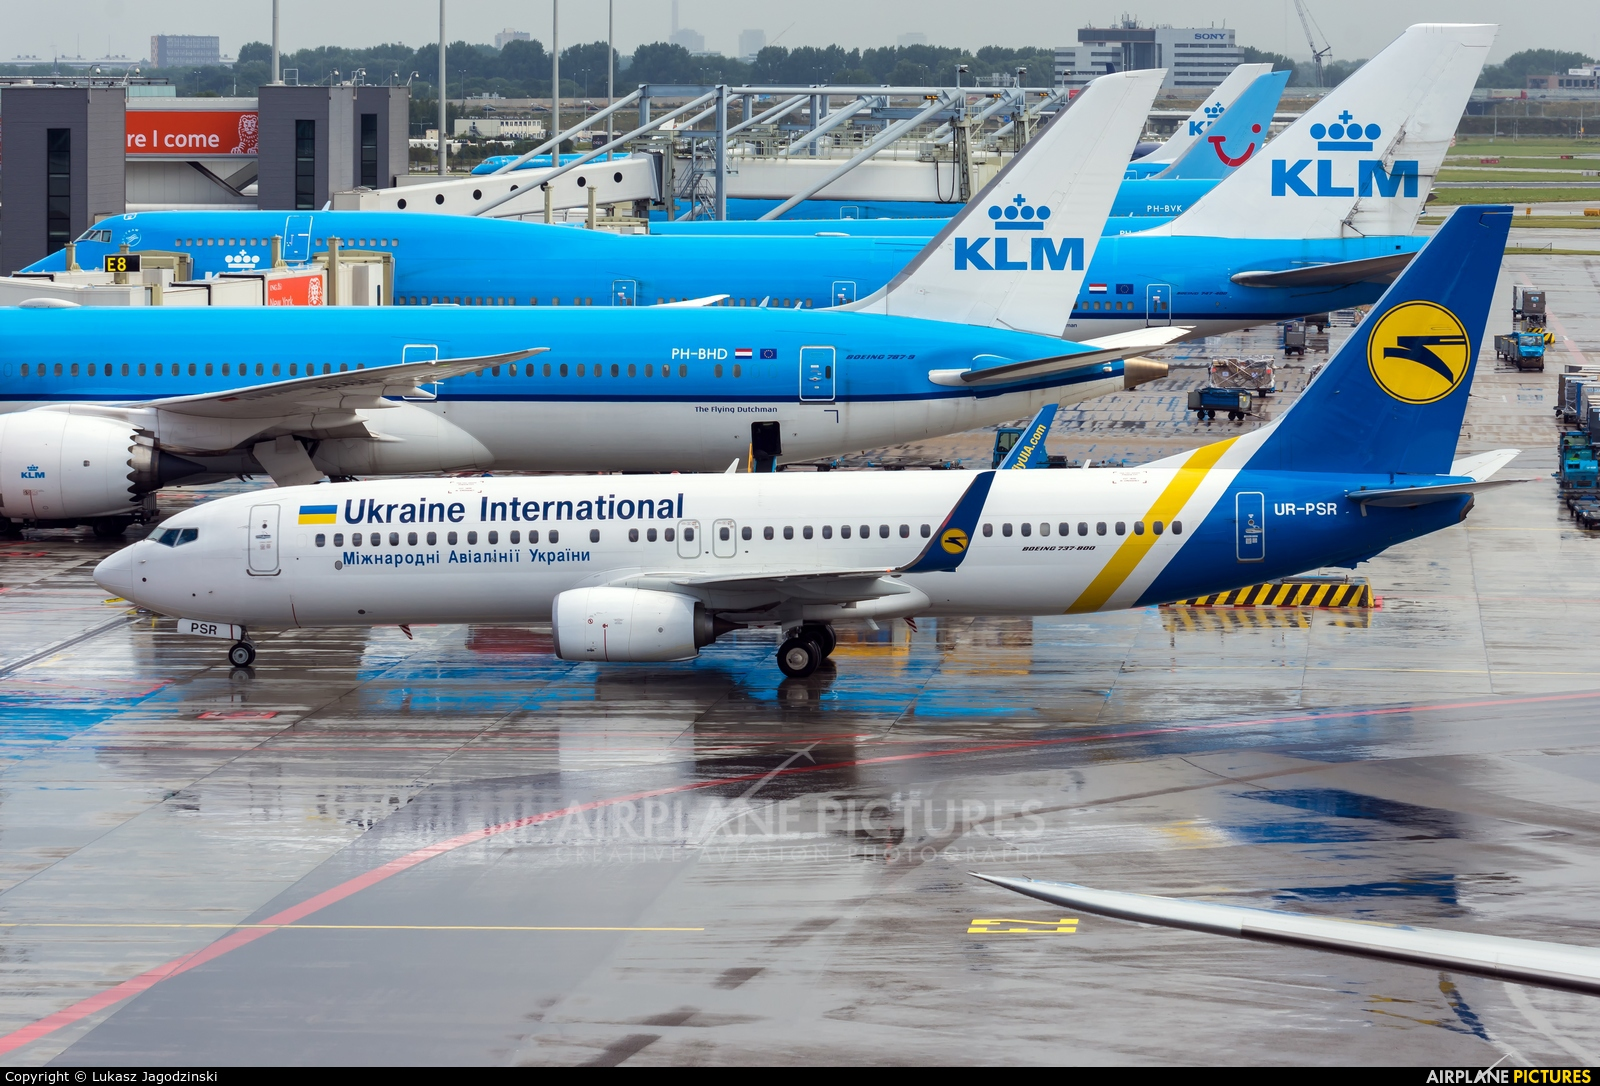 Ukraine International Airlines UR-PSR aircraft at Amsterdam - Schiphol